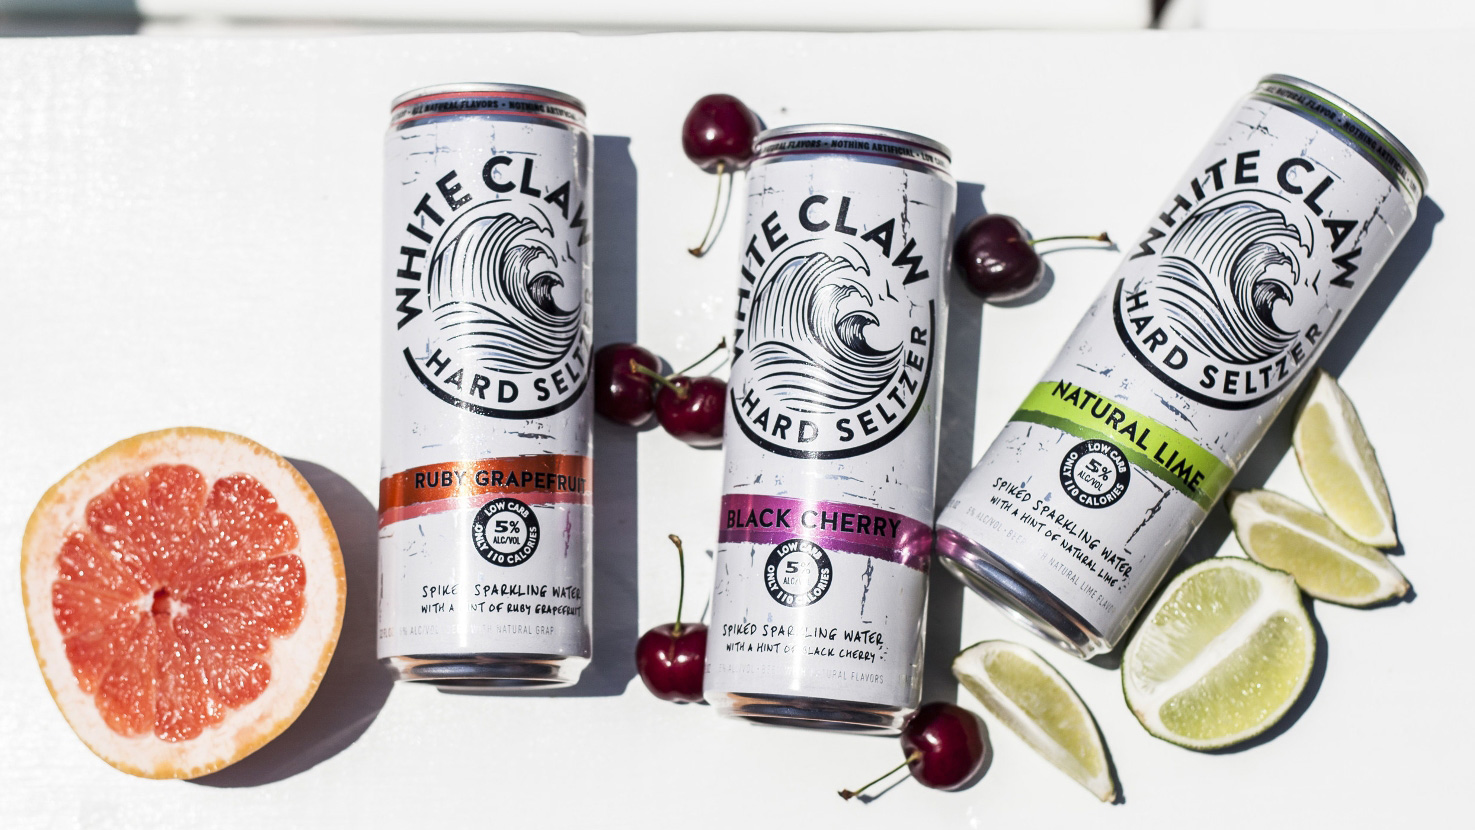 White Claw Hard Seltzer, spiked seltzer